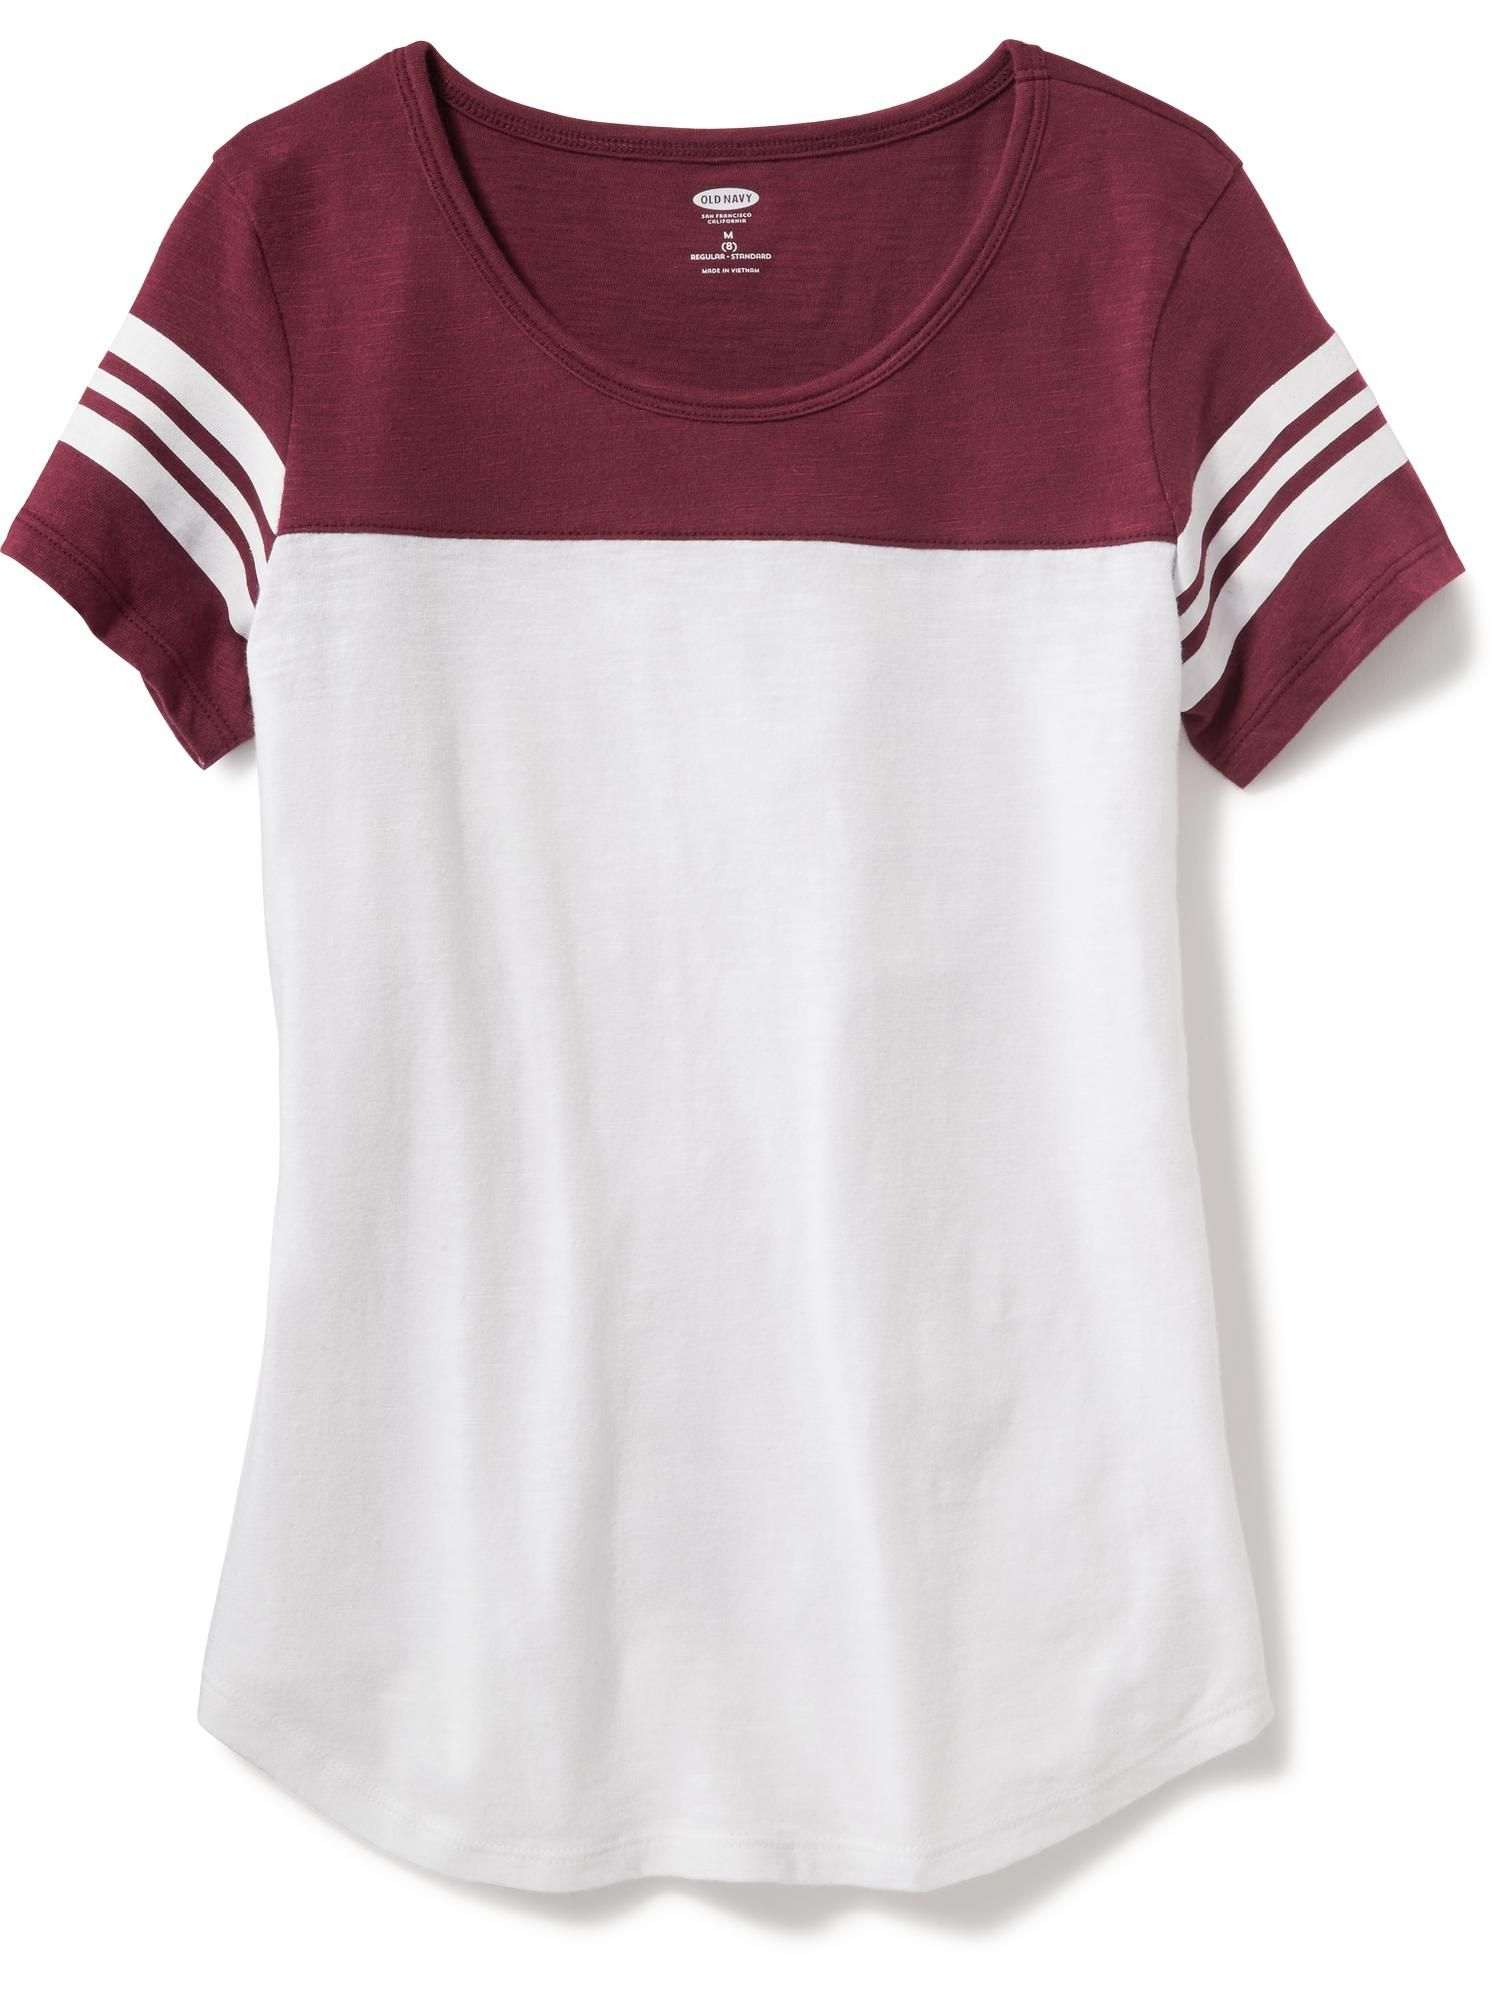 ce27e37828f1f8 Football Tee for Girls   Old Navy   clothes in 2019   Teenager ...